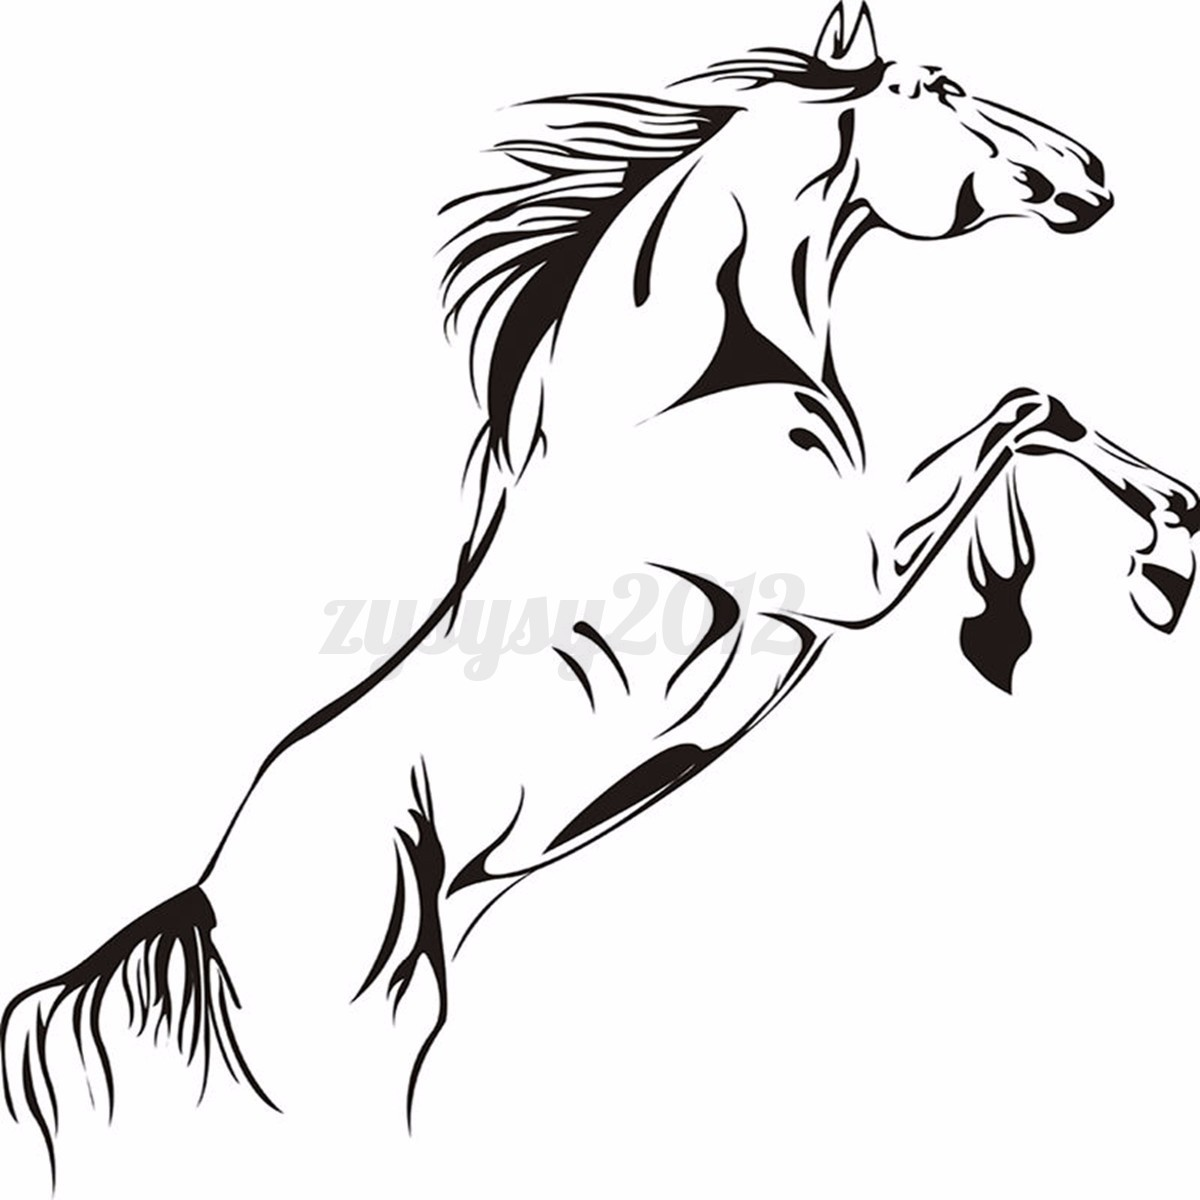 Details about Animal Running Horse Wall Stickers Bedroom Home Art ...